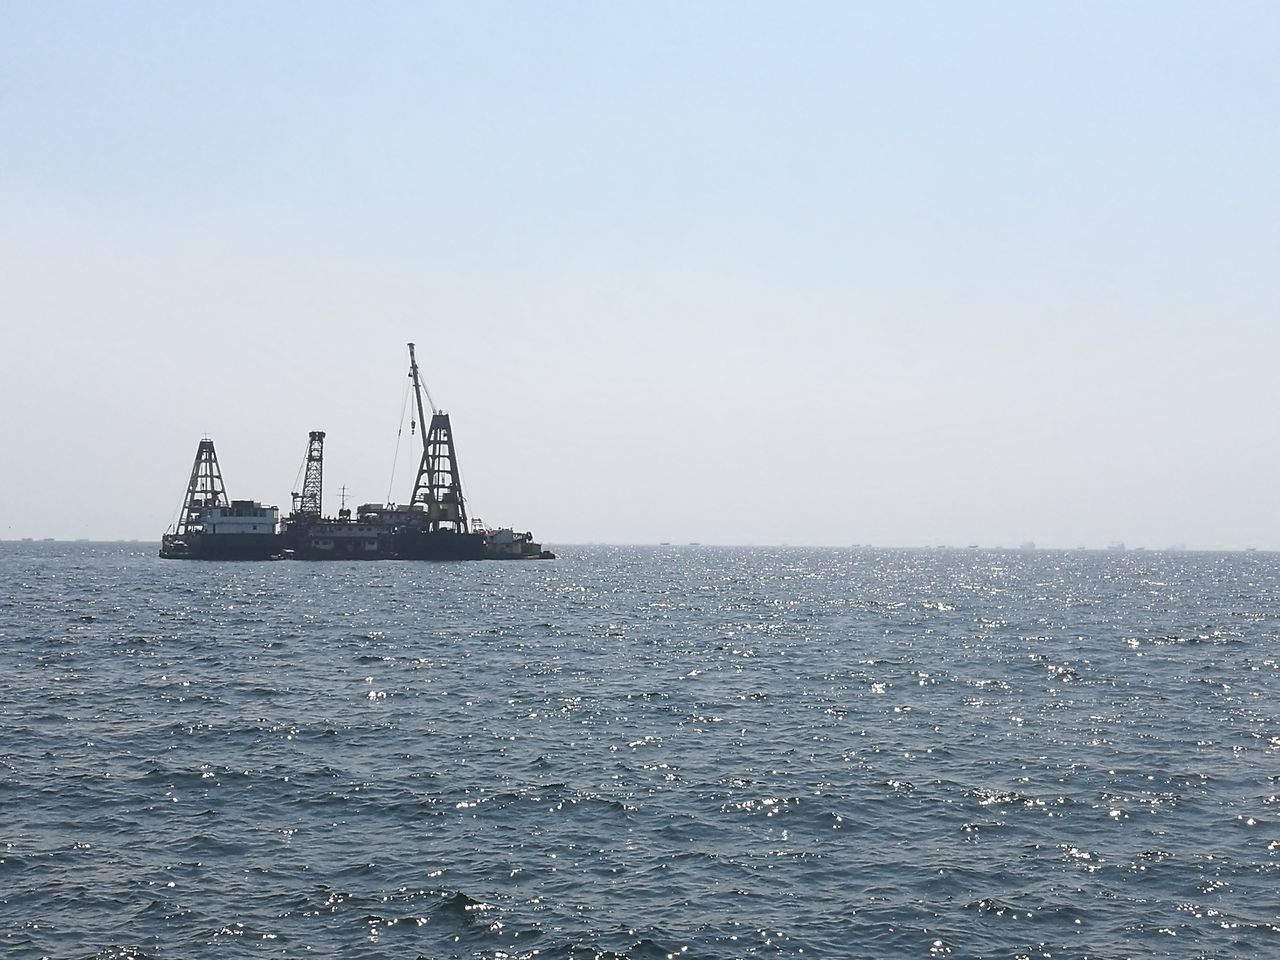 sea, copy space, water, day, offshore platform, horizon over water, oil industry, waterfront, clear sky, no people, nautical vessel, outdoors, ship, industry, nature, drilling rig, scenics, sky, oil pump